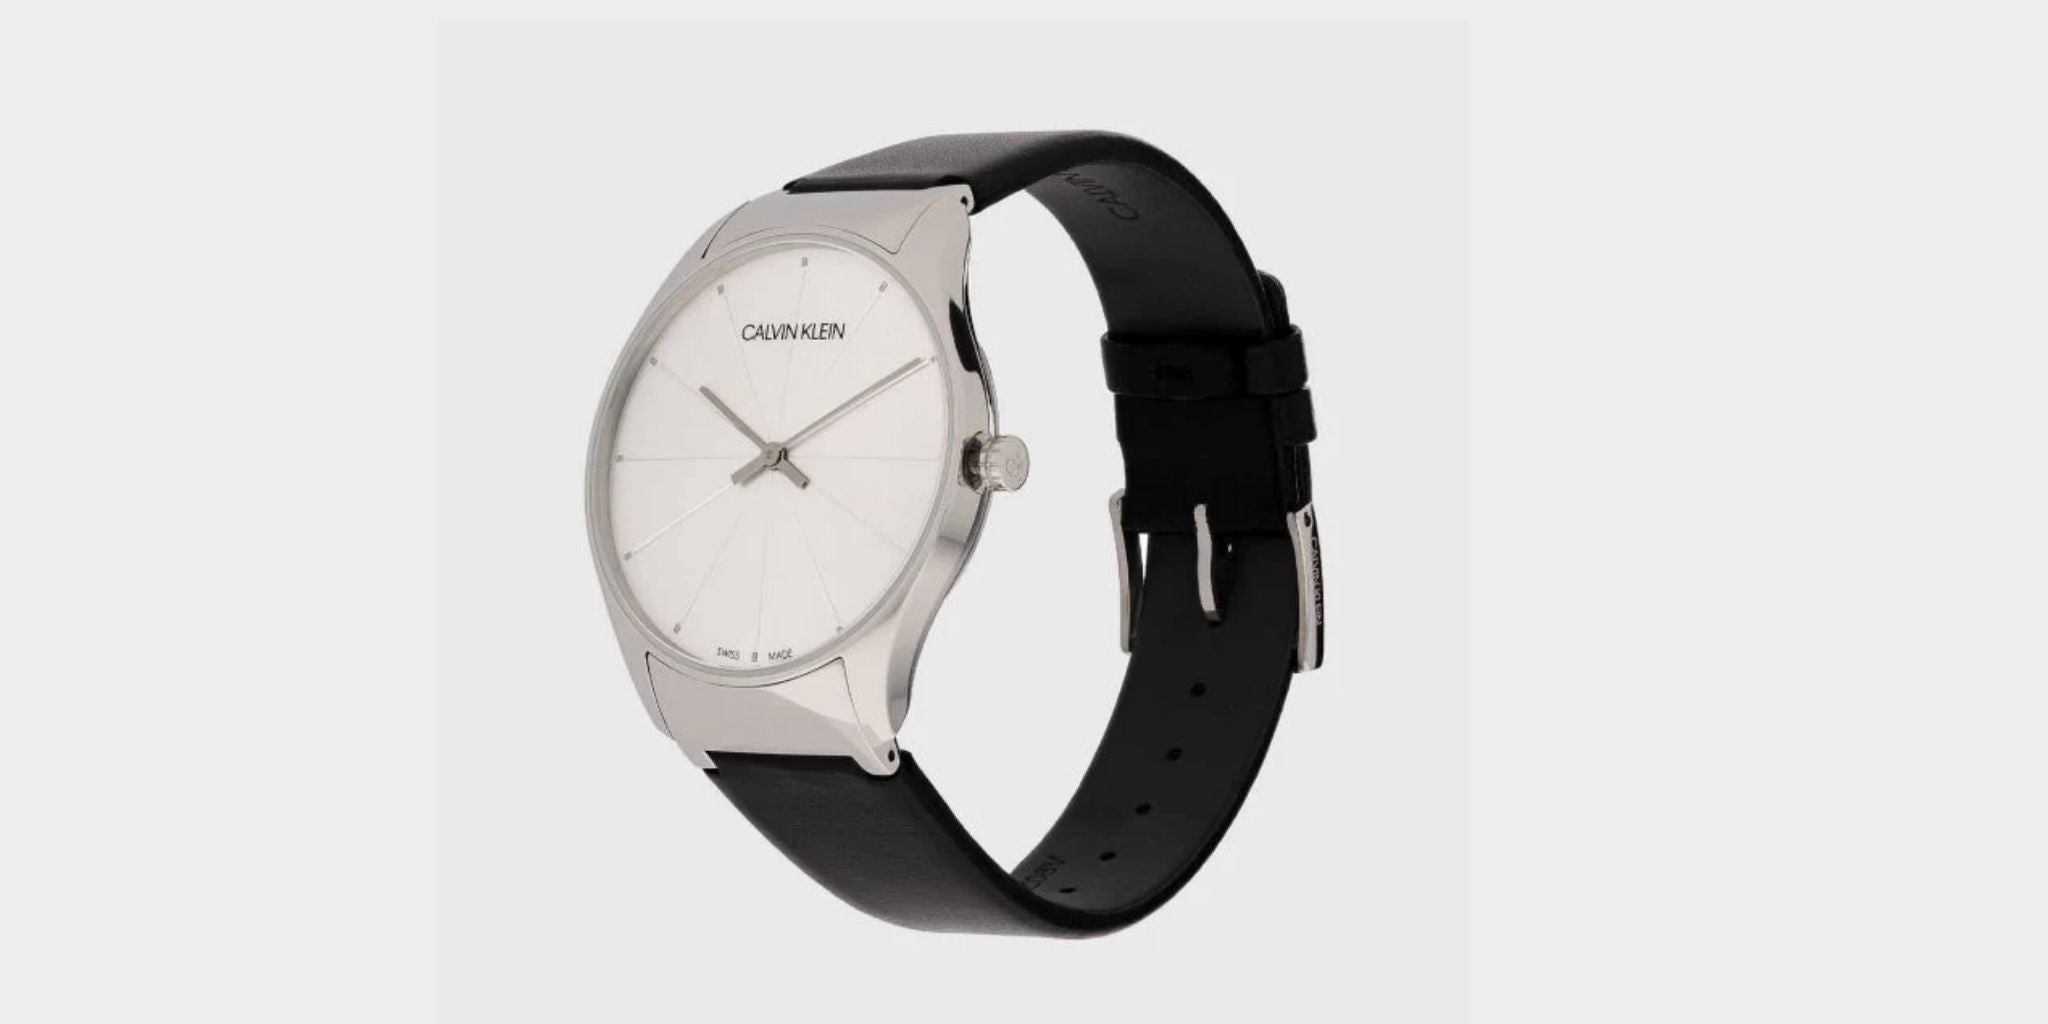 Calvin Klein Classic 38MM Black Leather, Best Watch Brands for Women, Best Watches For Women, Best Women's Watches, Best Women's Watches 2020, Ladies Watches, Quality Women's Watches,